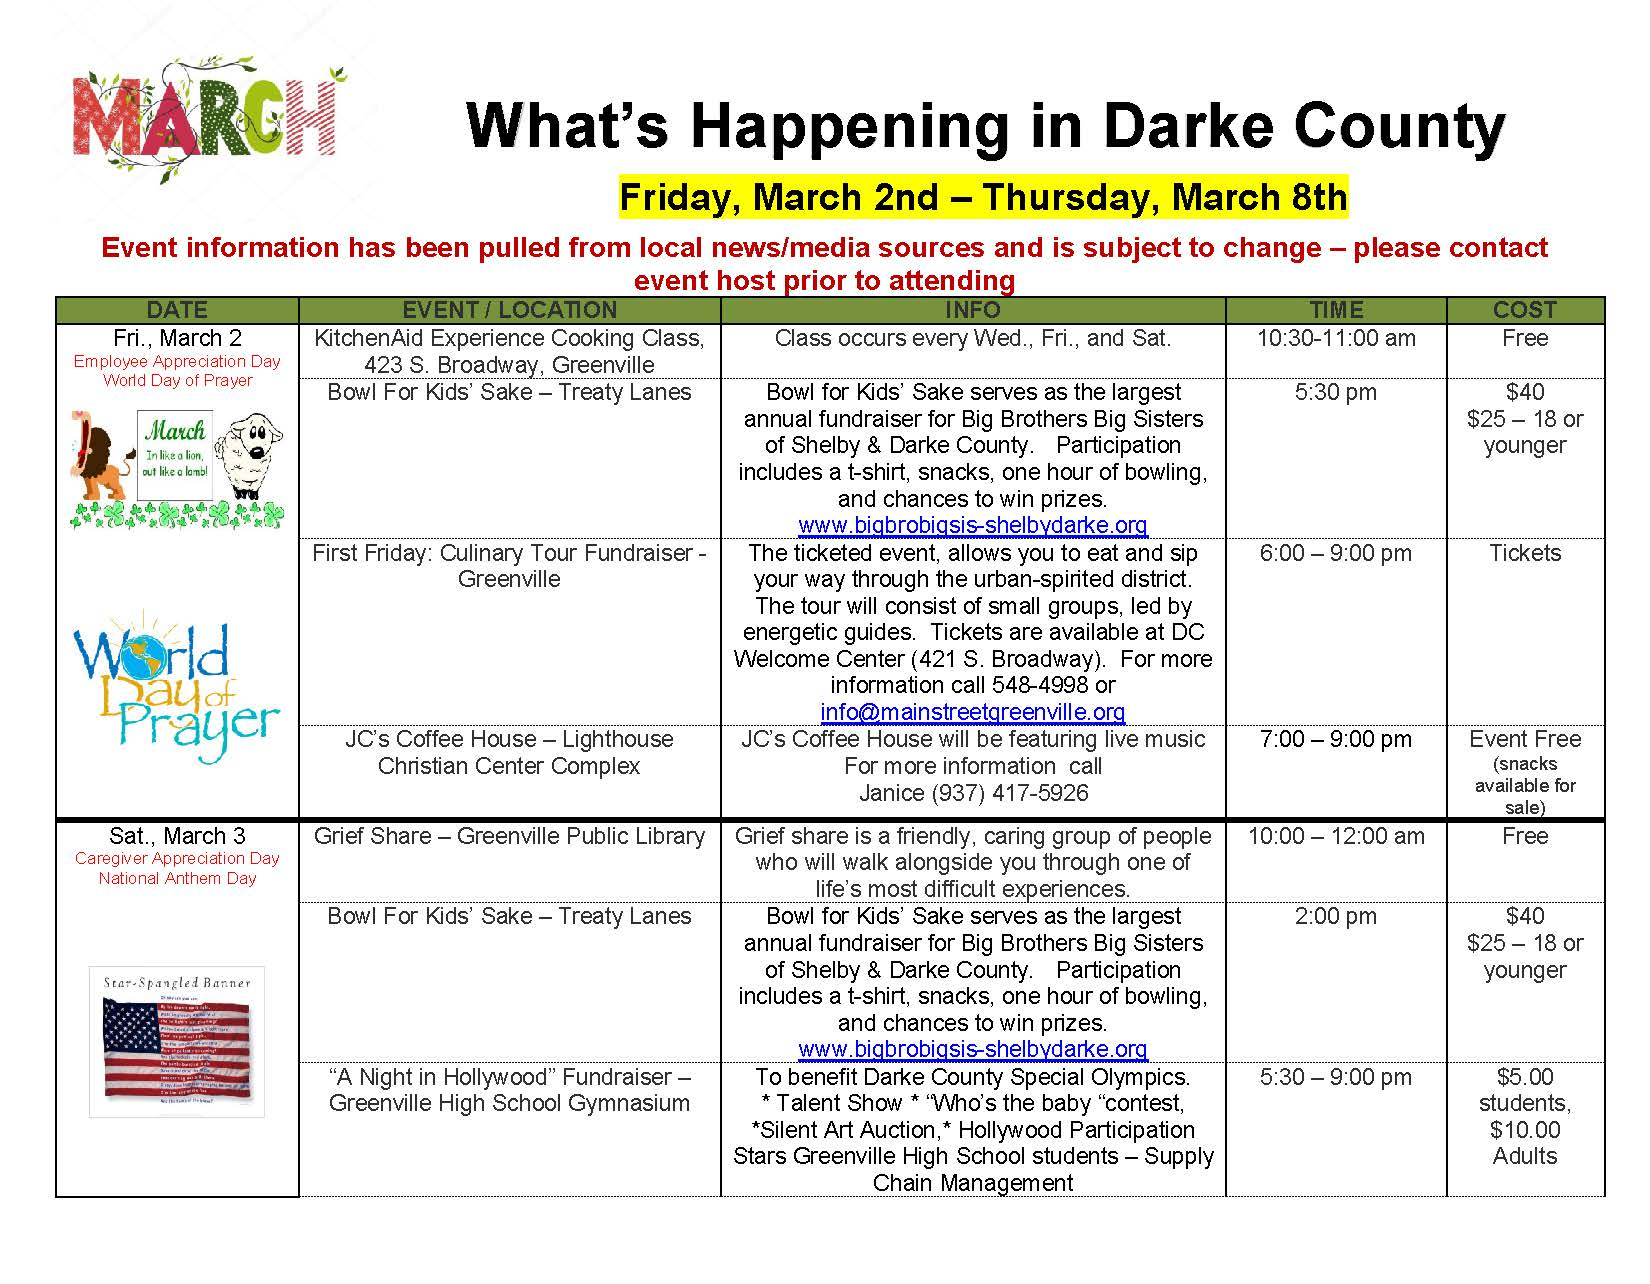 What's Happening in Darke County 3/2/18 – 3/15/18